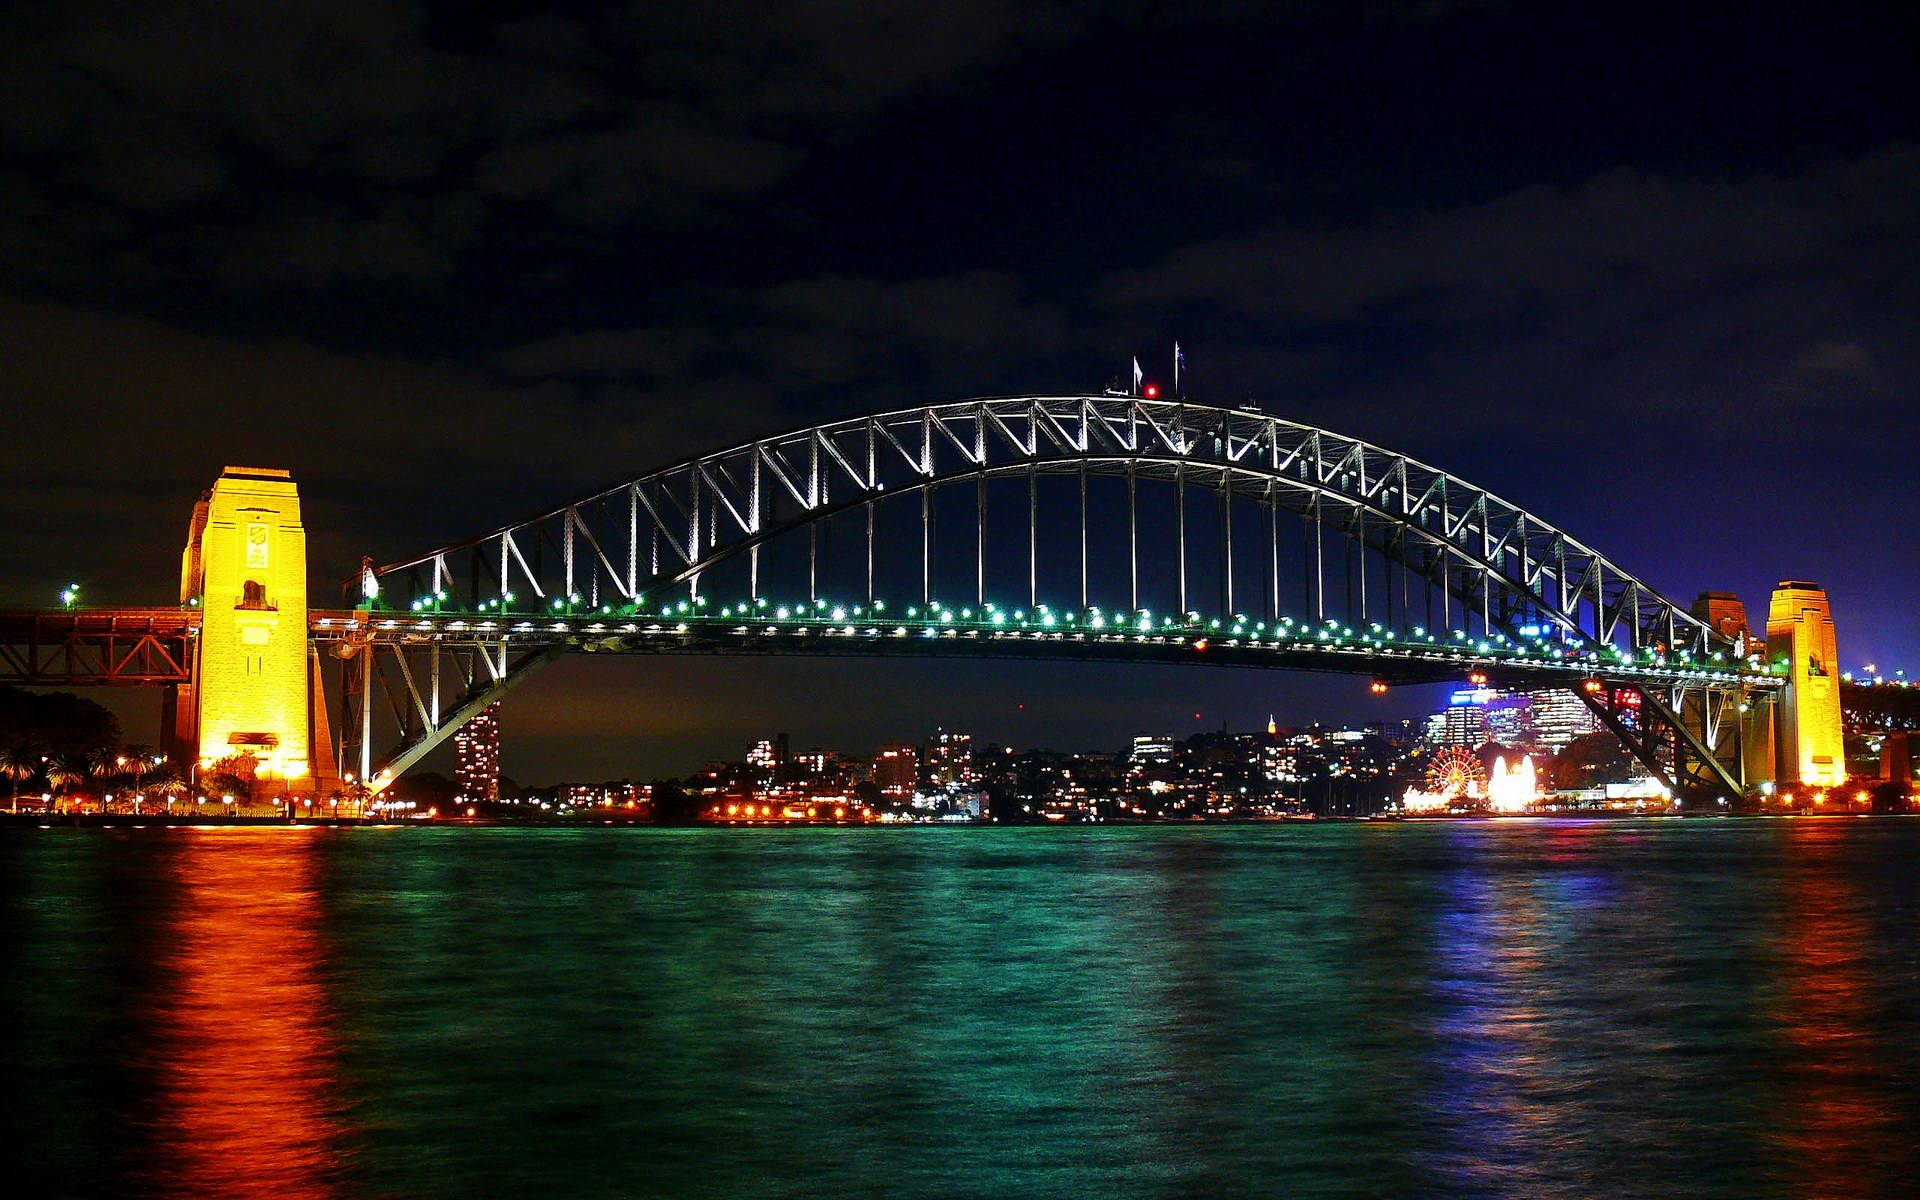 Fantastic Wallpaper Night Laptop - sydney-harbour-bridge-at-night-light-laptop-backgrounds-free-high-definition-stunning-free-wallpapers-download  Graphic-169857.jpg